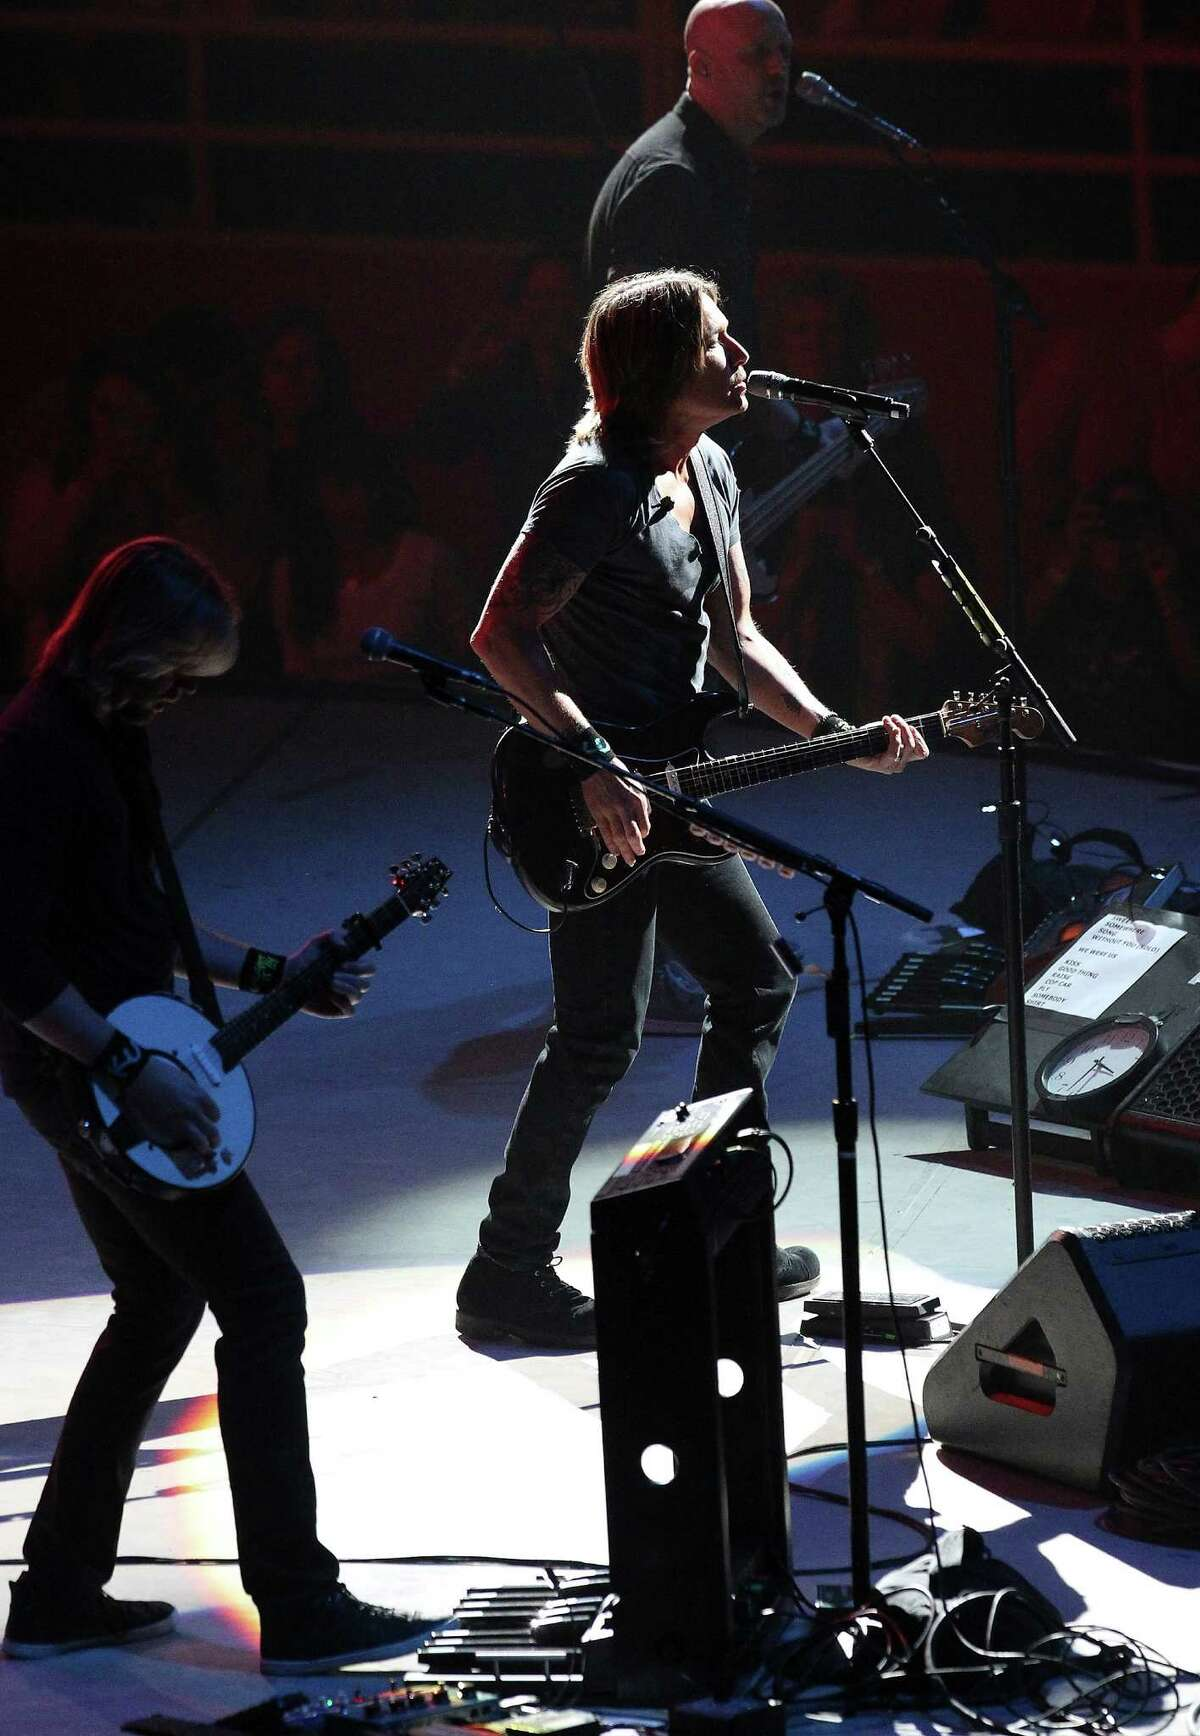 Keith Urban performs at the 2015 San Antonio Stock Show and Rodeo at the AT&T Center on Saturday, Feb. 14, 2015. (Kin Man Hui/San Antonio Express-News)